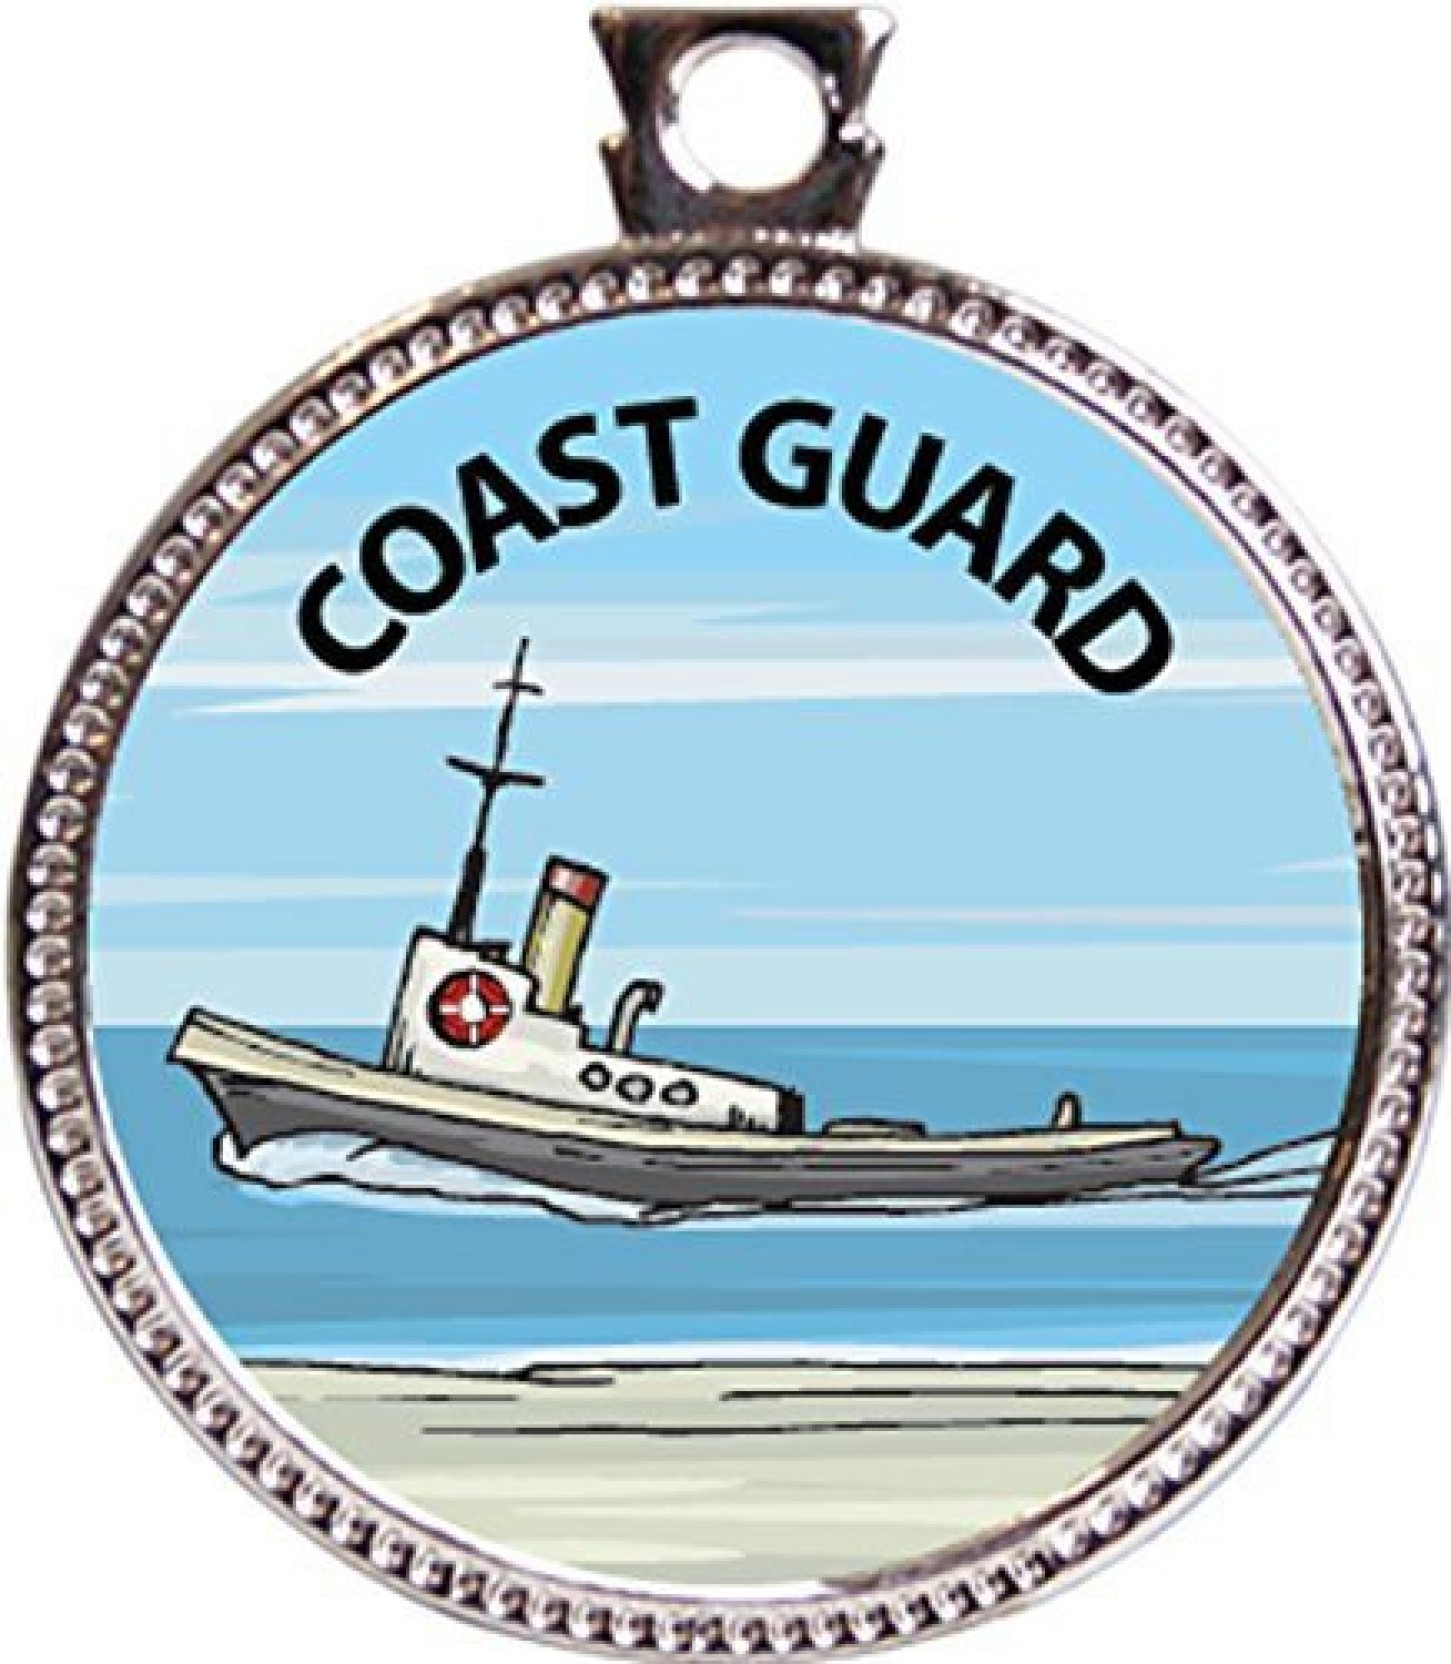 Keepsake Awards Coast Guard Award, 1 Inch Dia Silver Medal